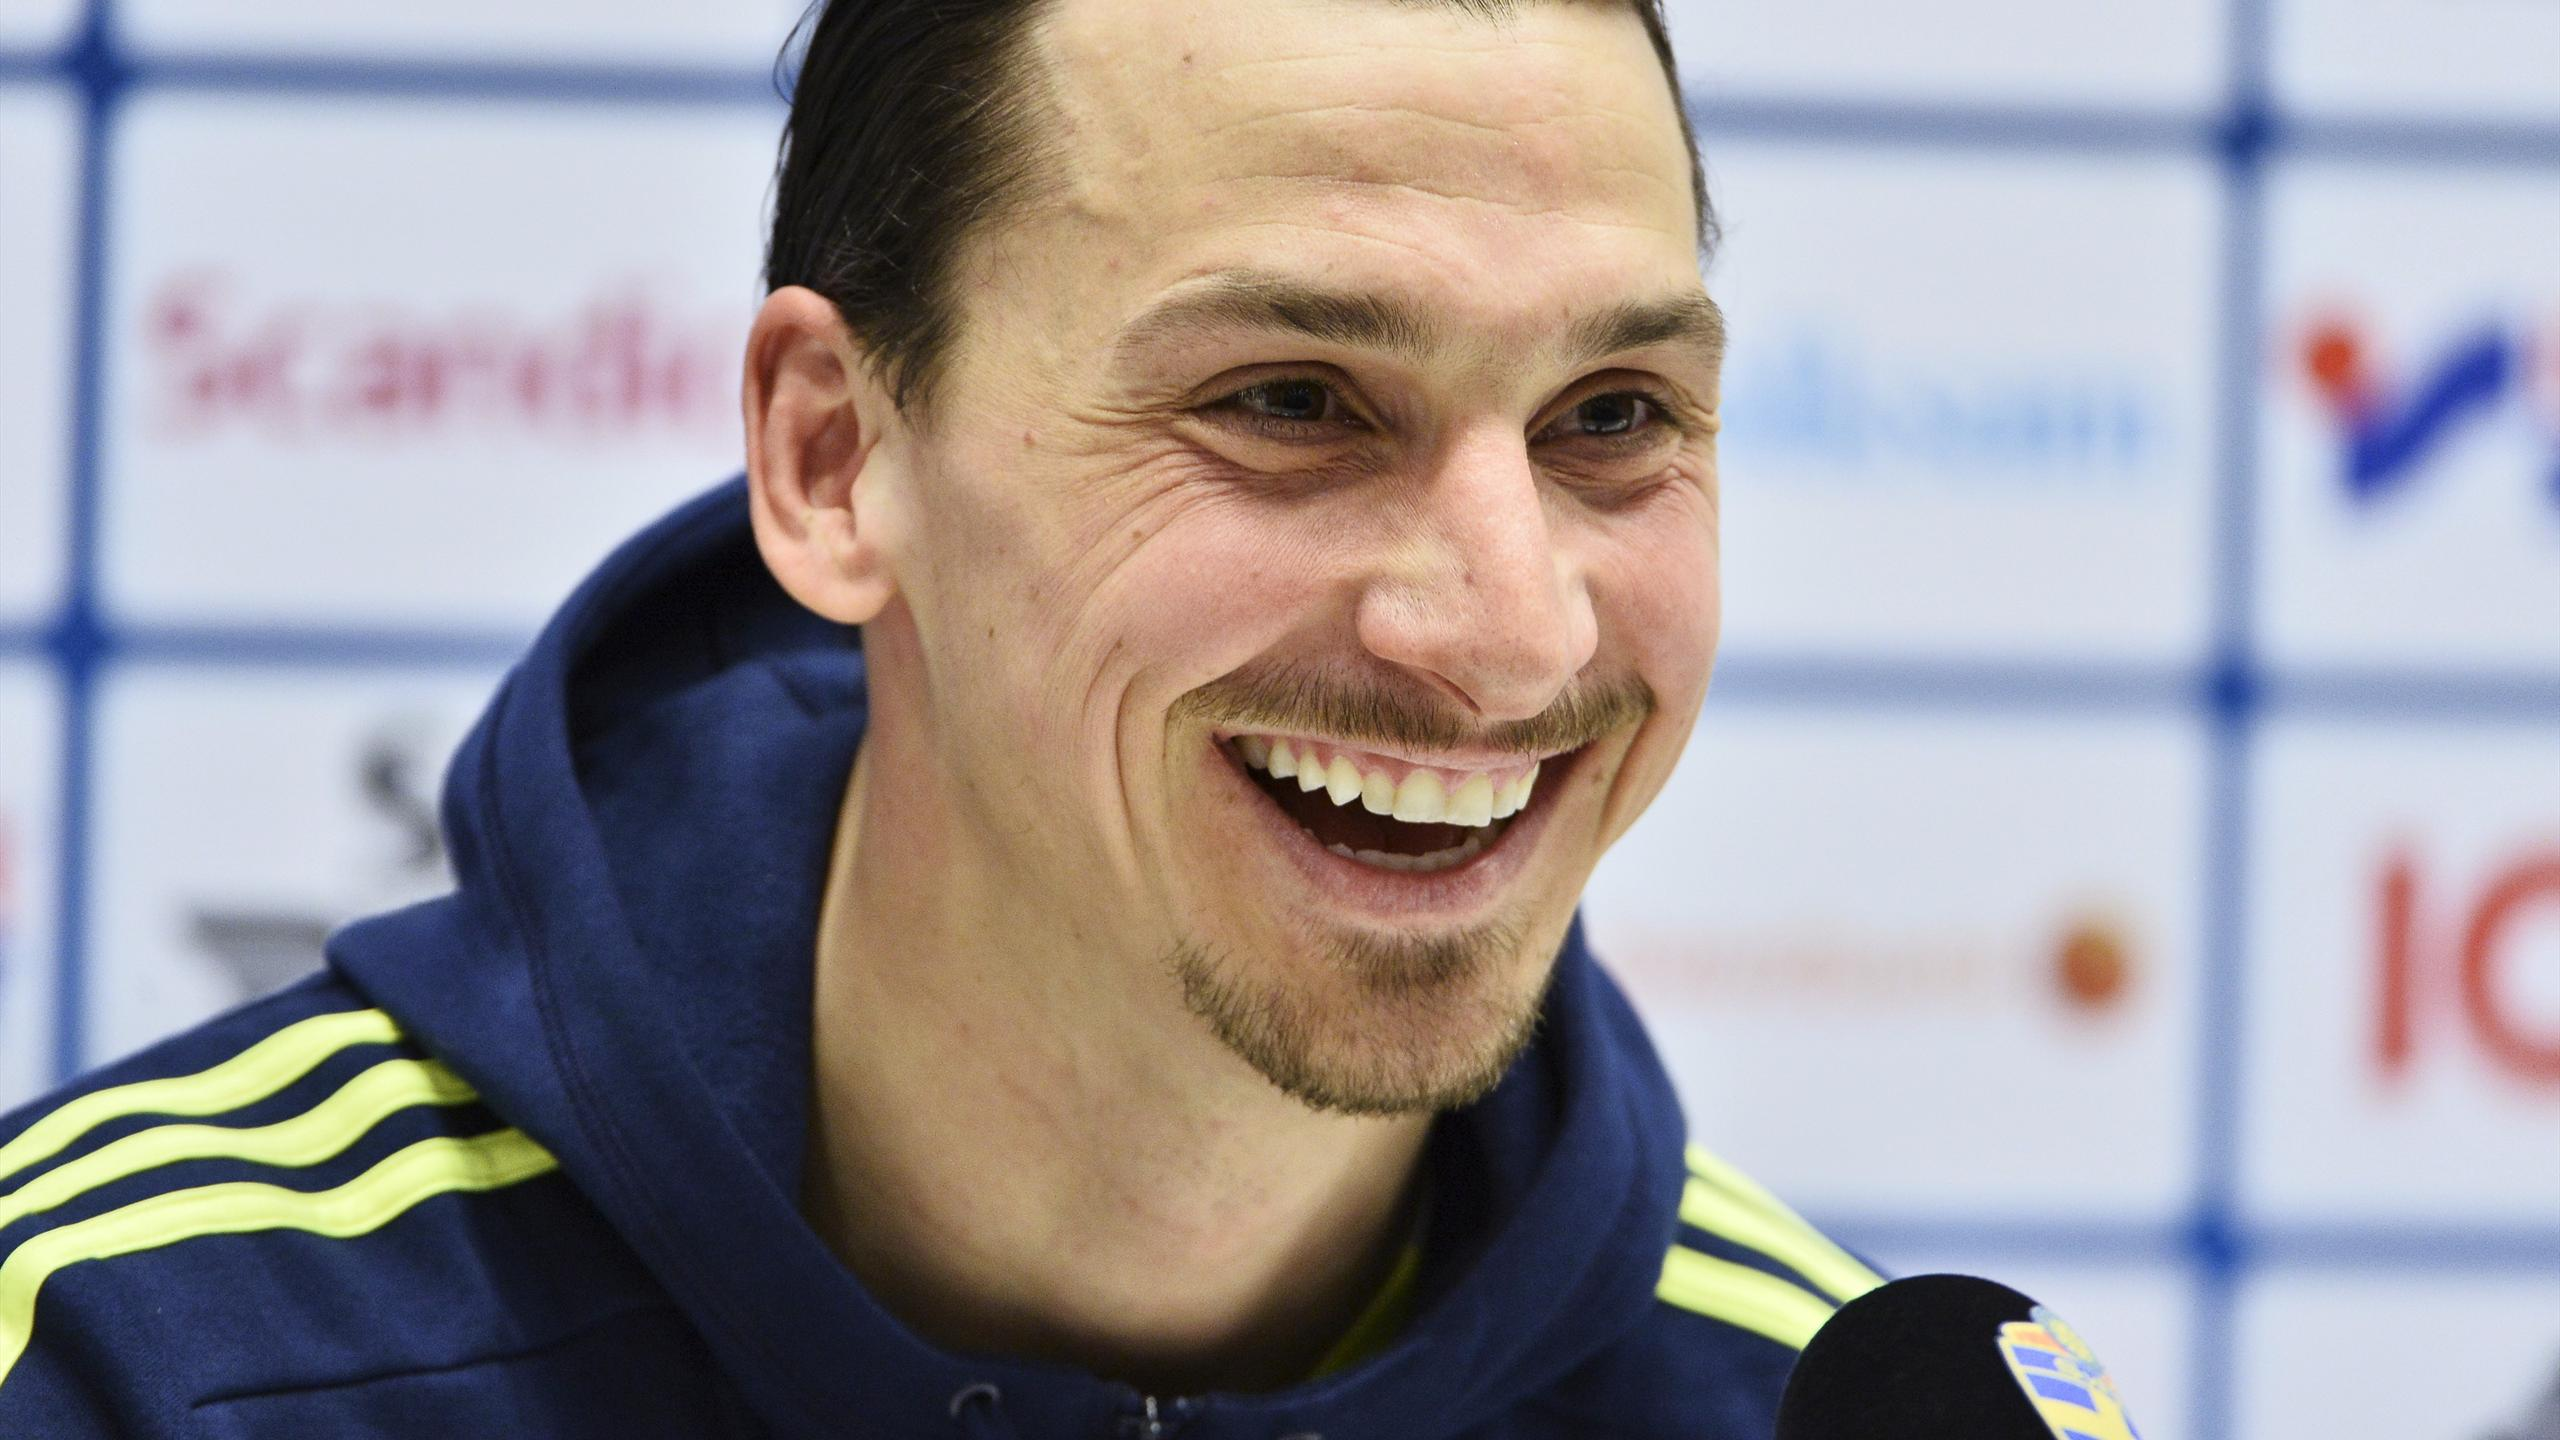 Sweden's Zlatan Ibrahimovic smiles during a press conference